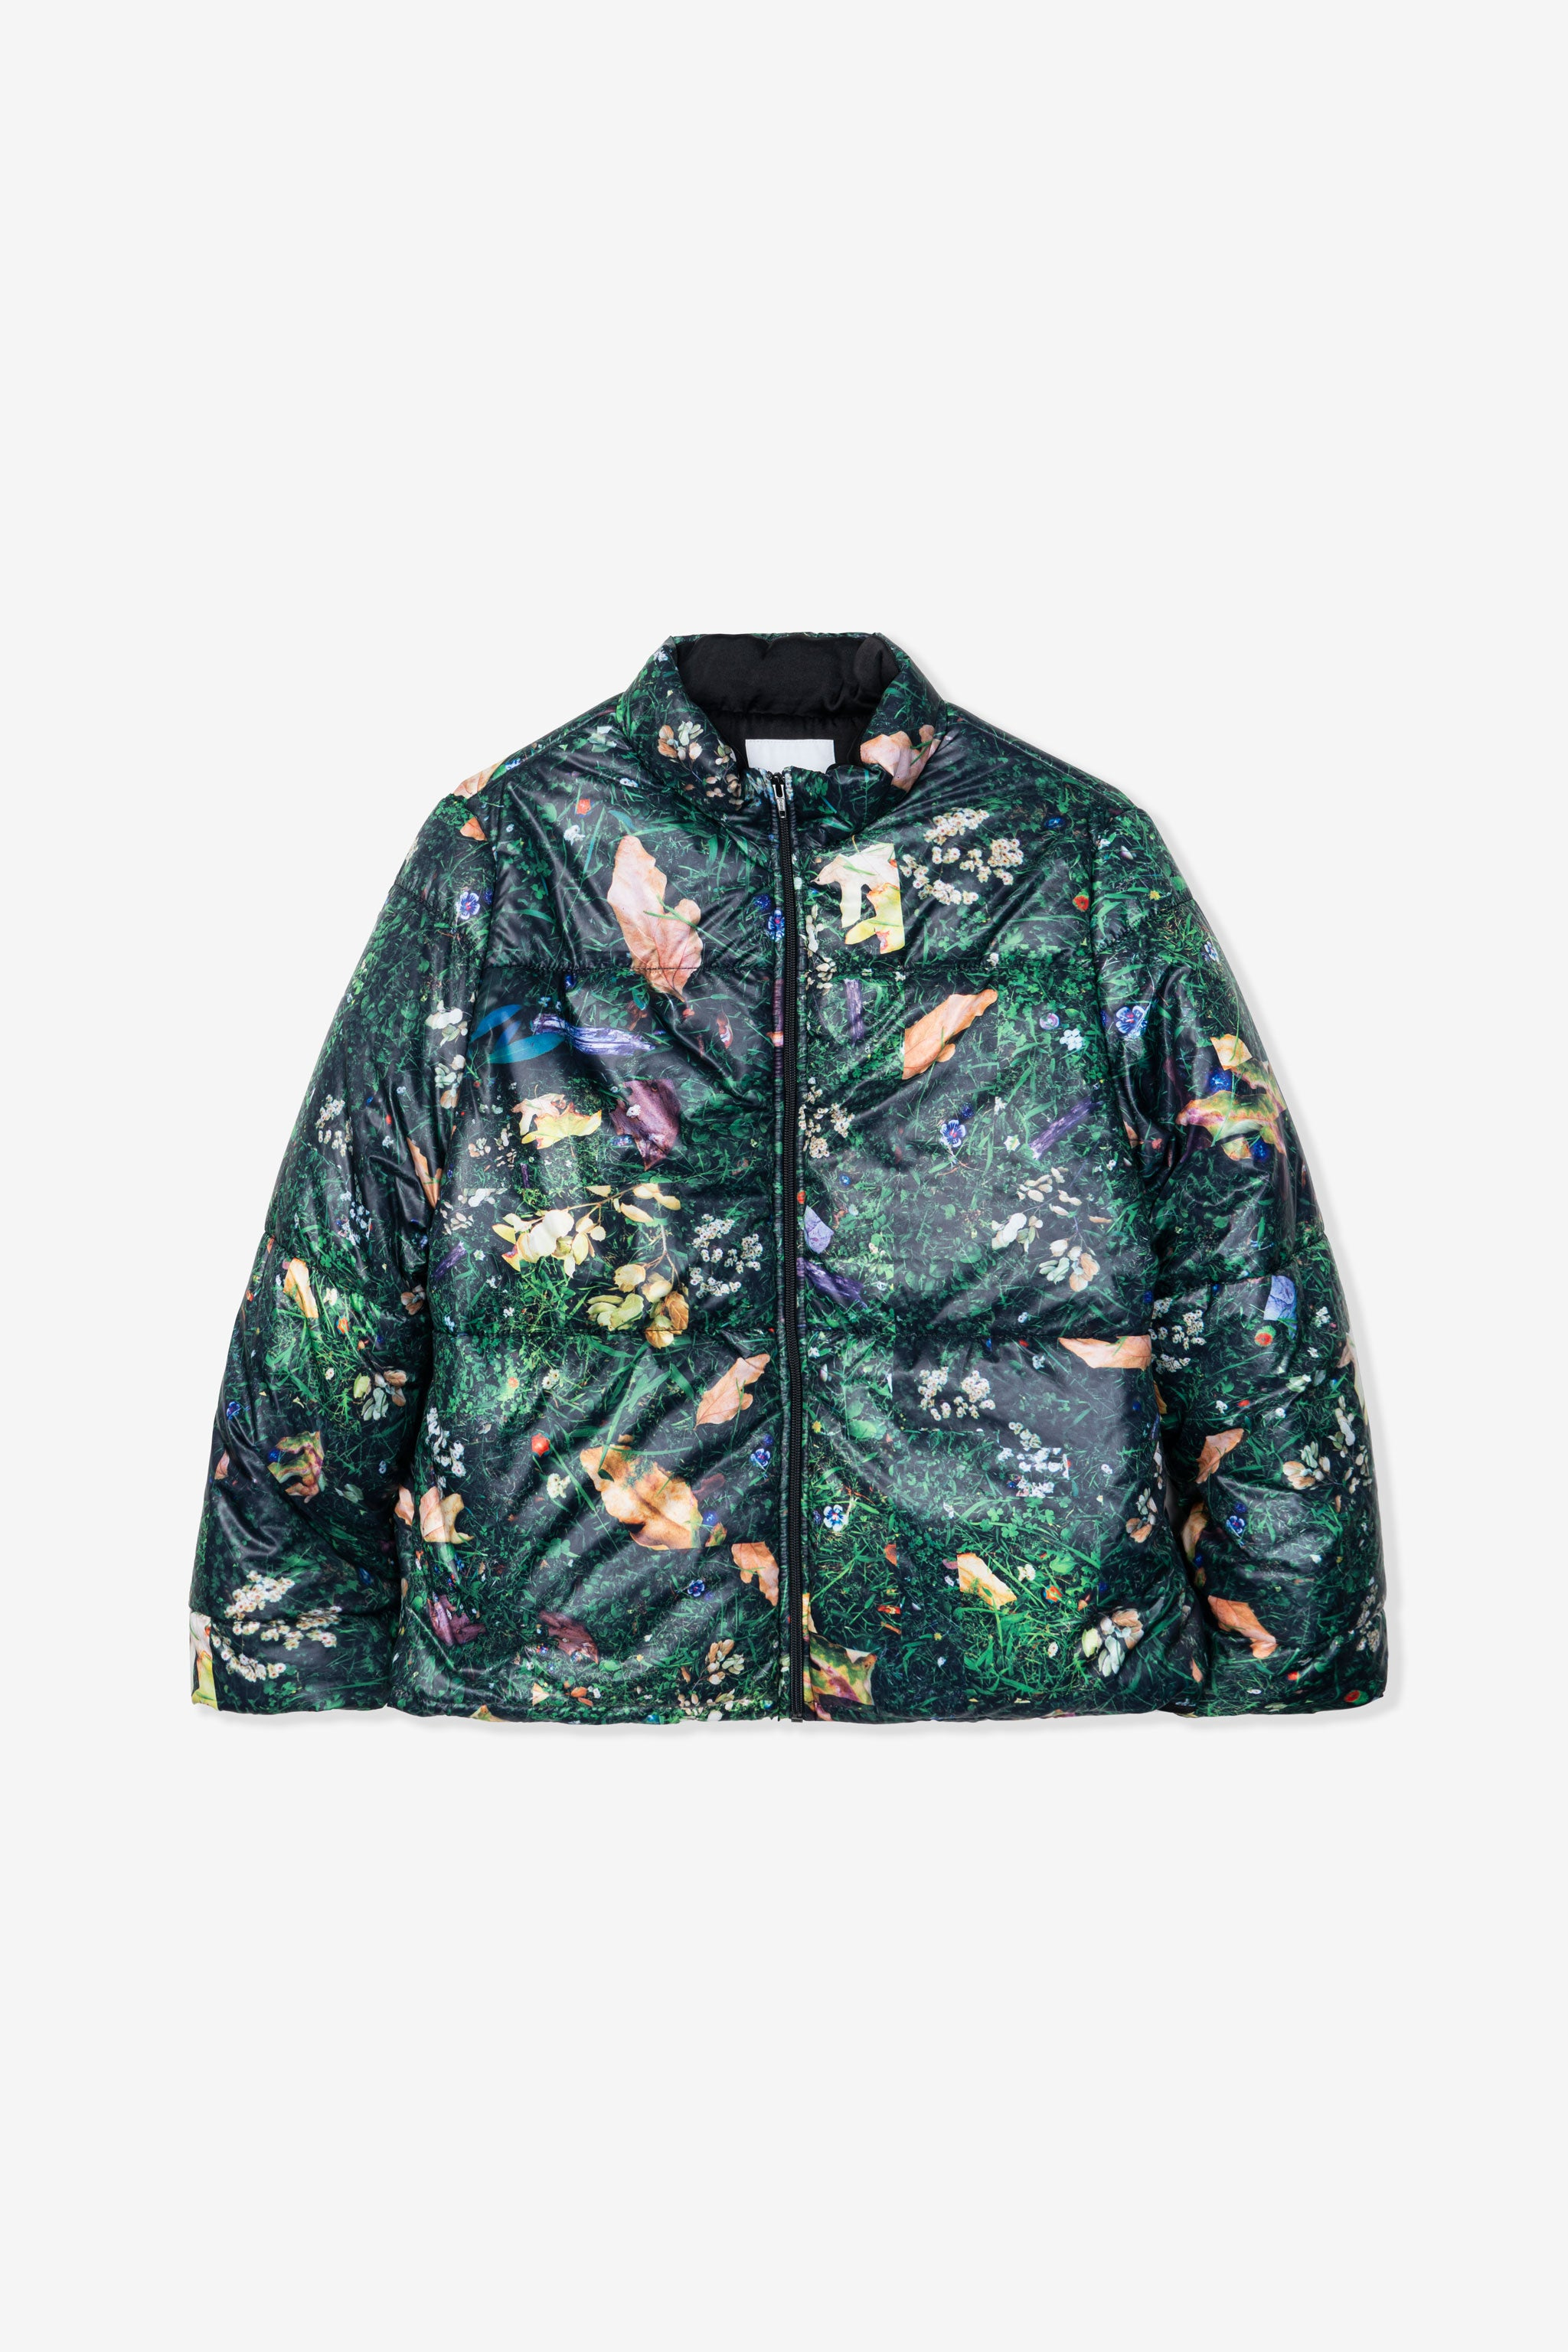 Goodfight Camp Craft Puff Jacket